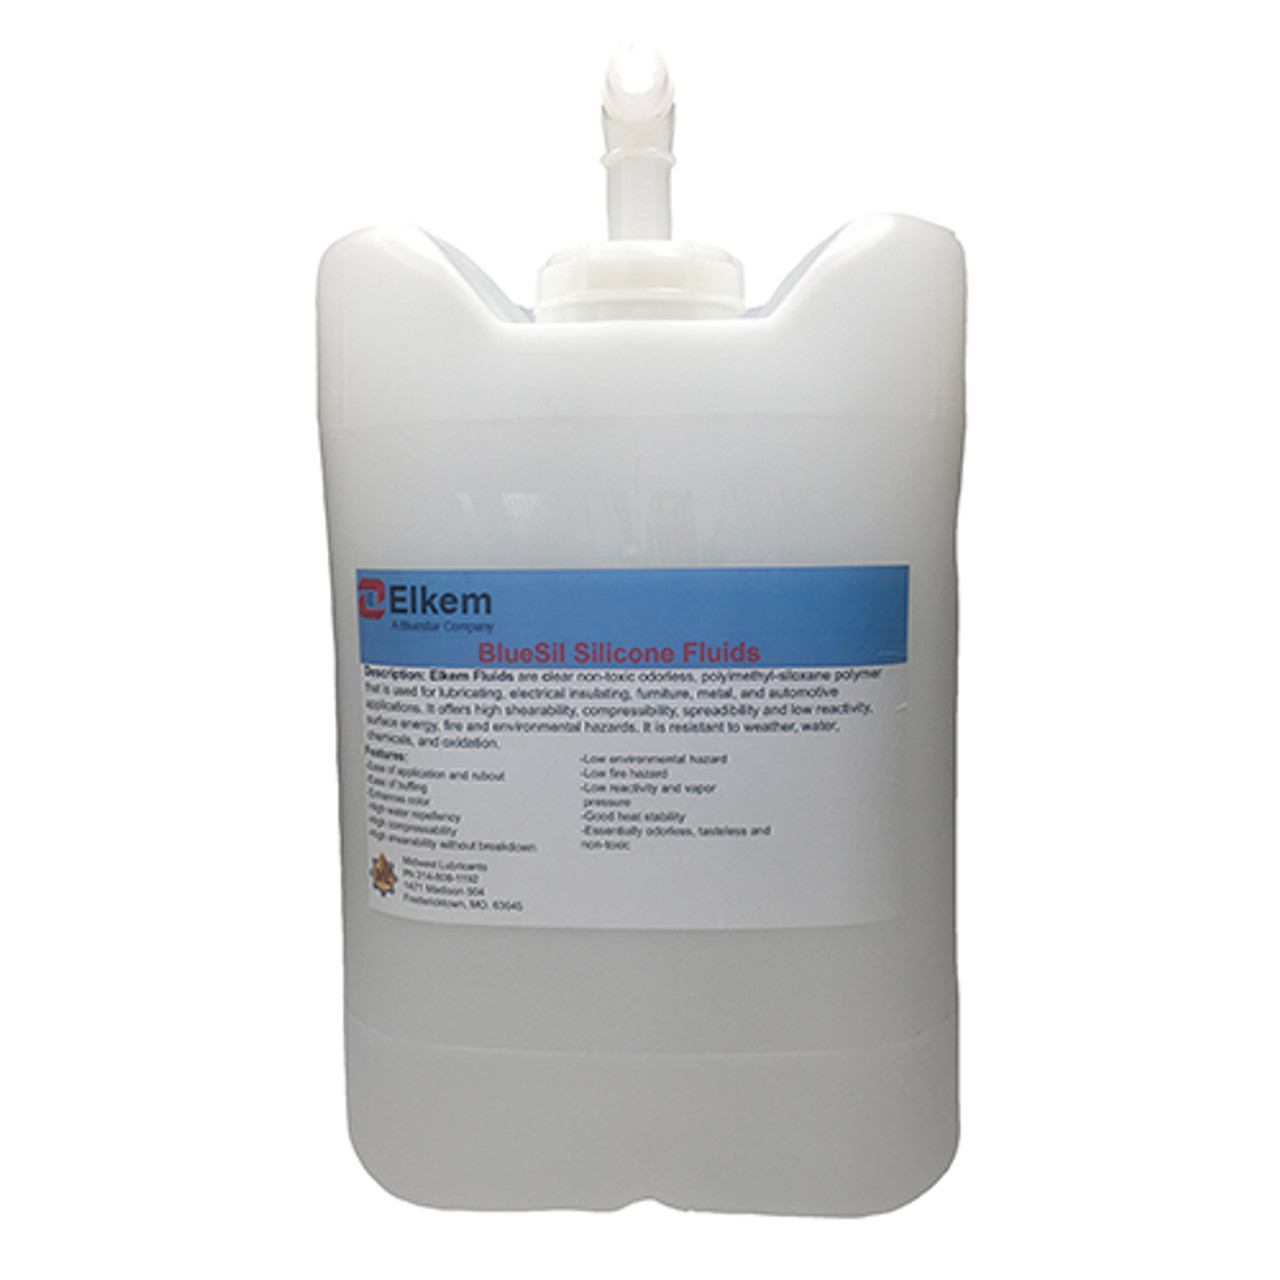 5 Gal./18.9Kg Jerrigan with pour spout and drillable vent hole